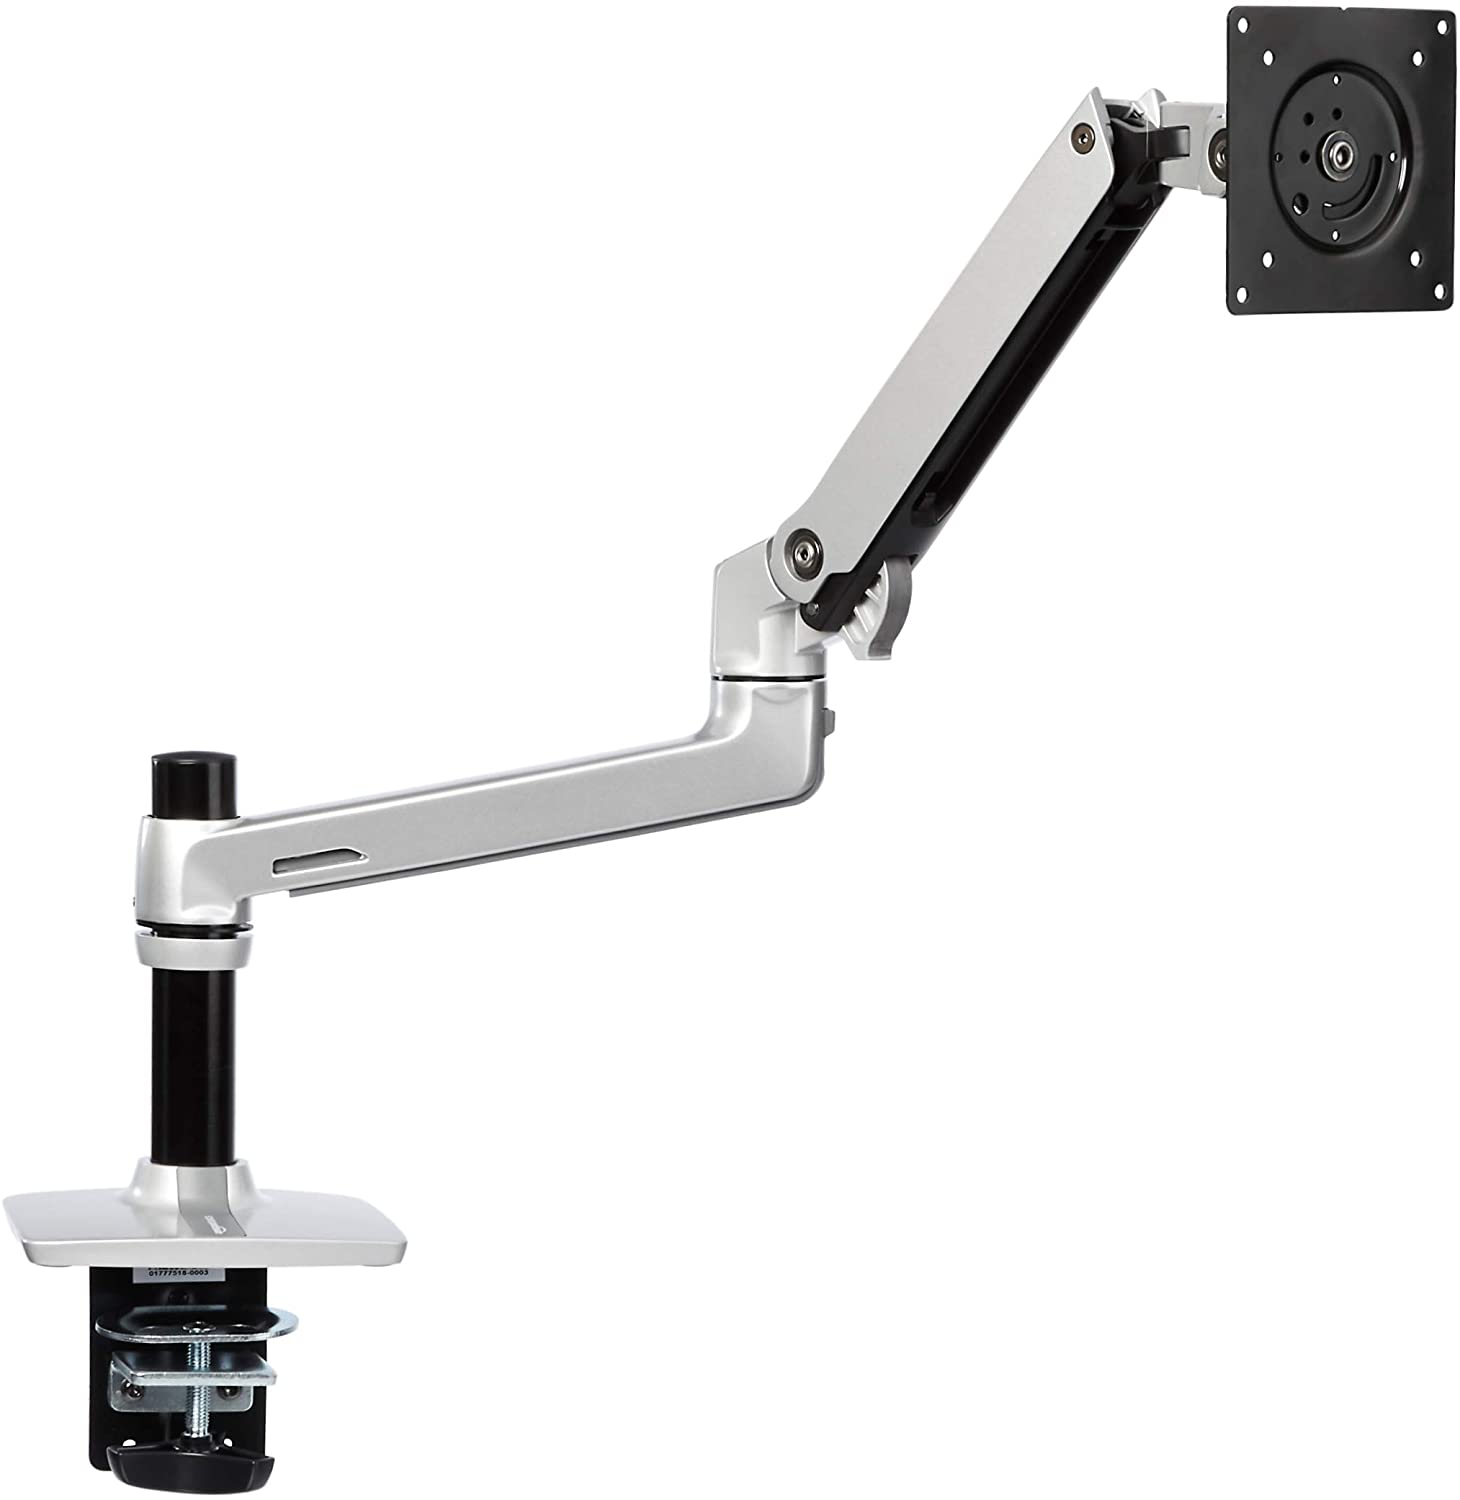 AmazonBasics Premium Single Monitor Stand - Lift Engine Arm Mount, Aluminum - Silver